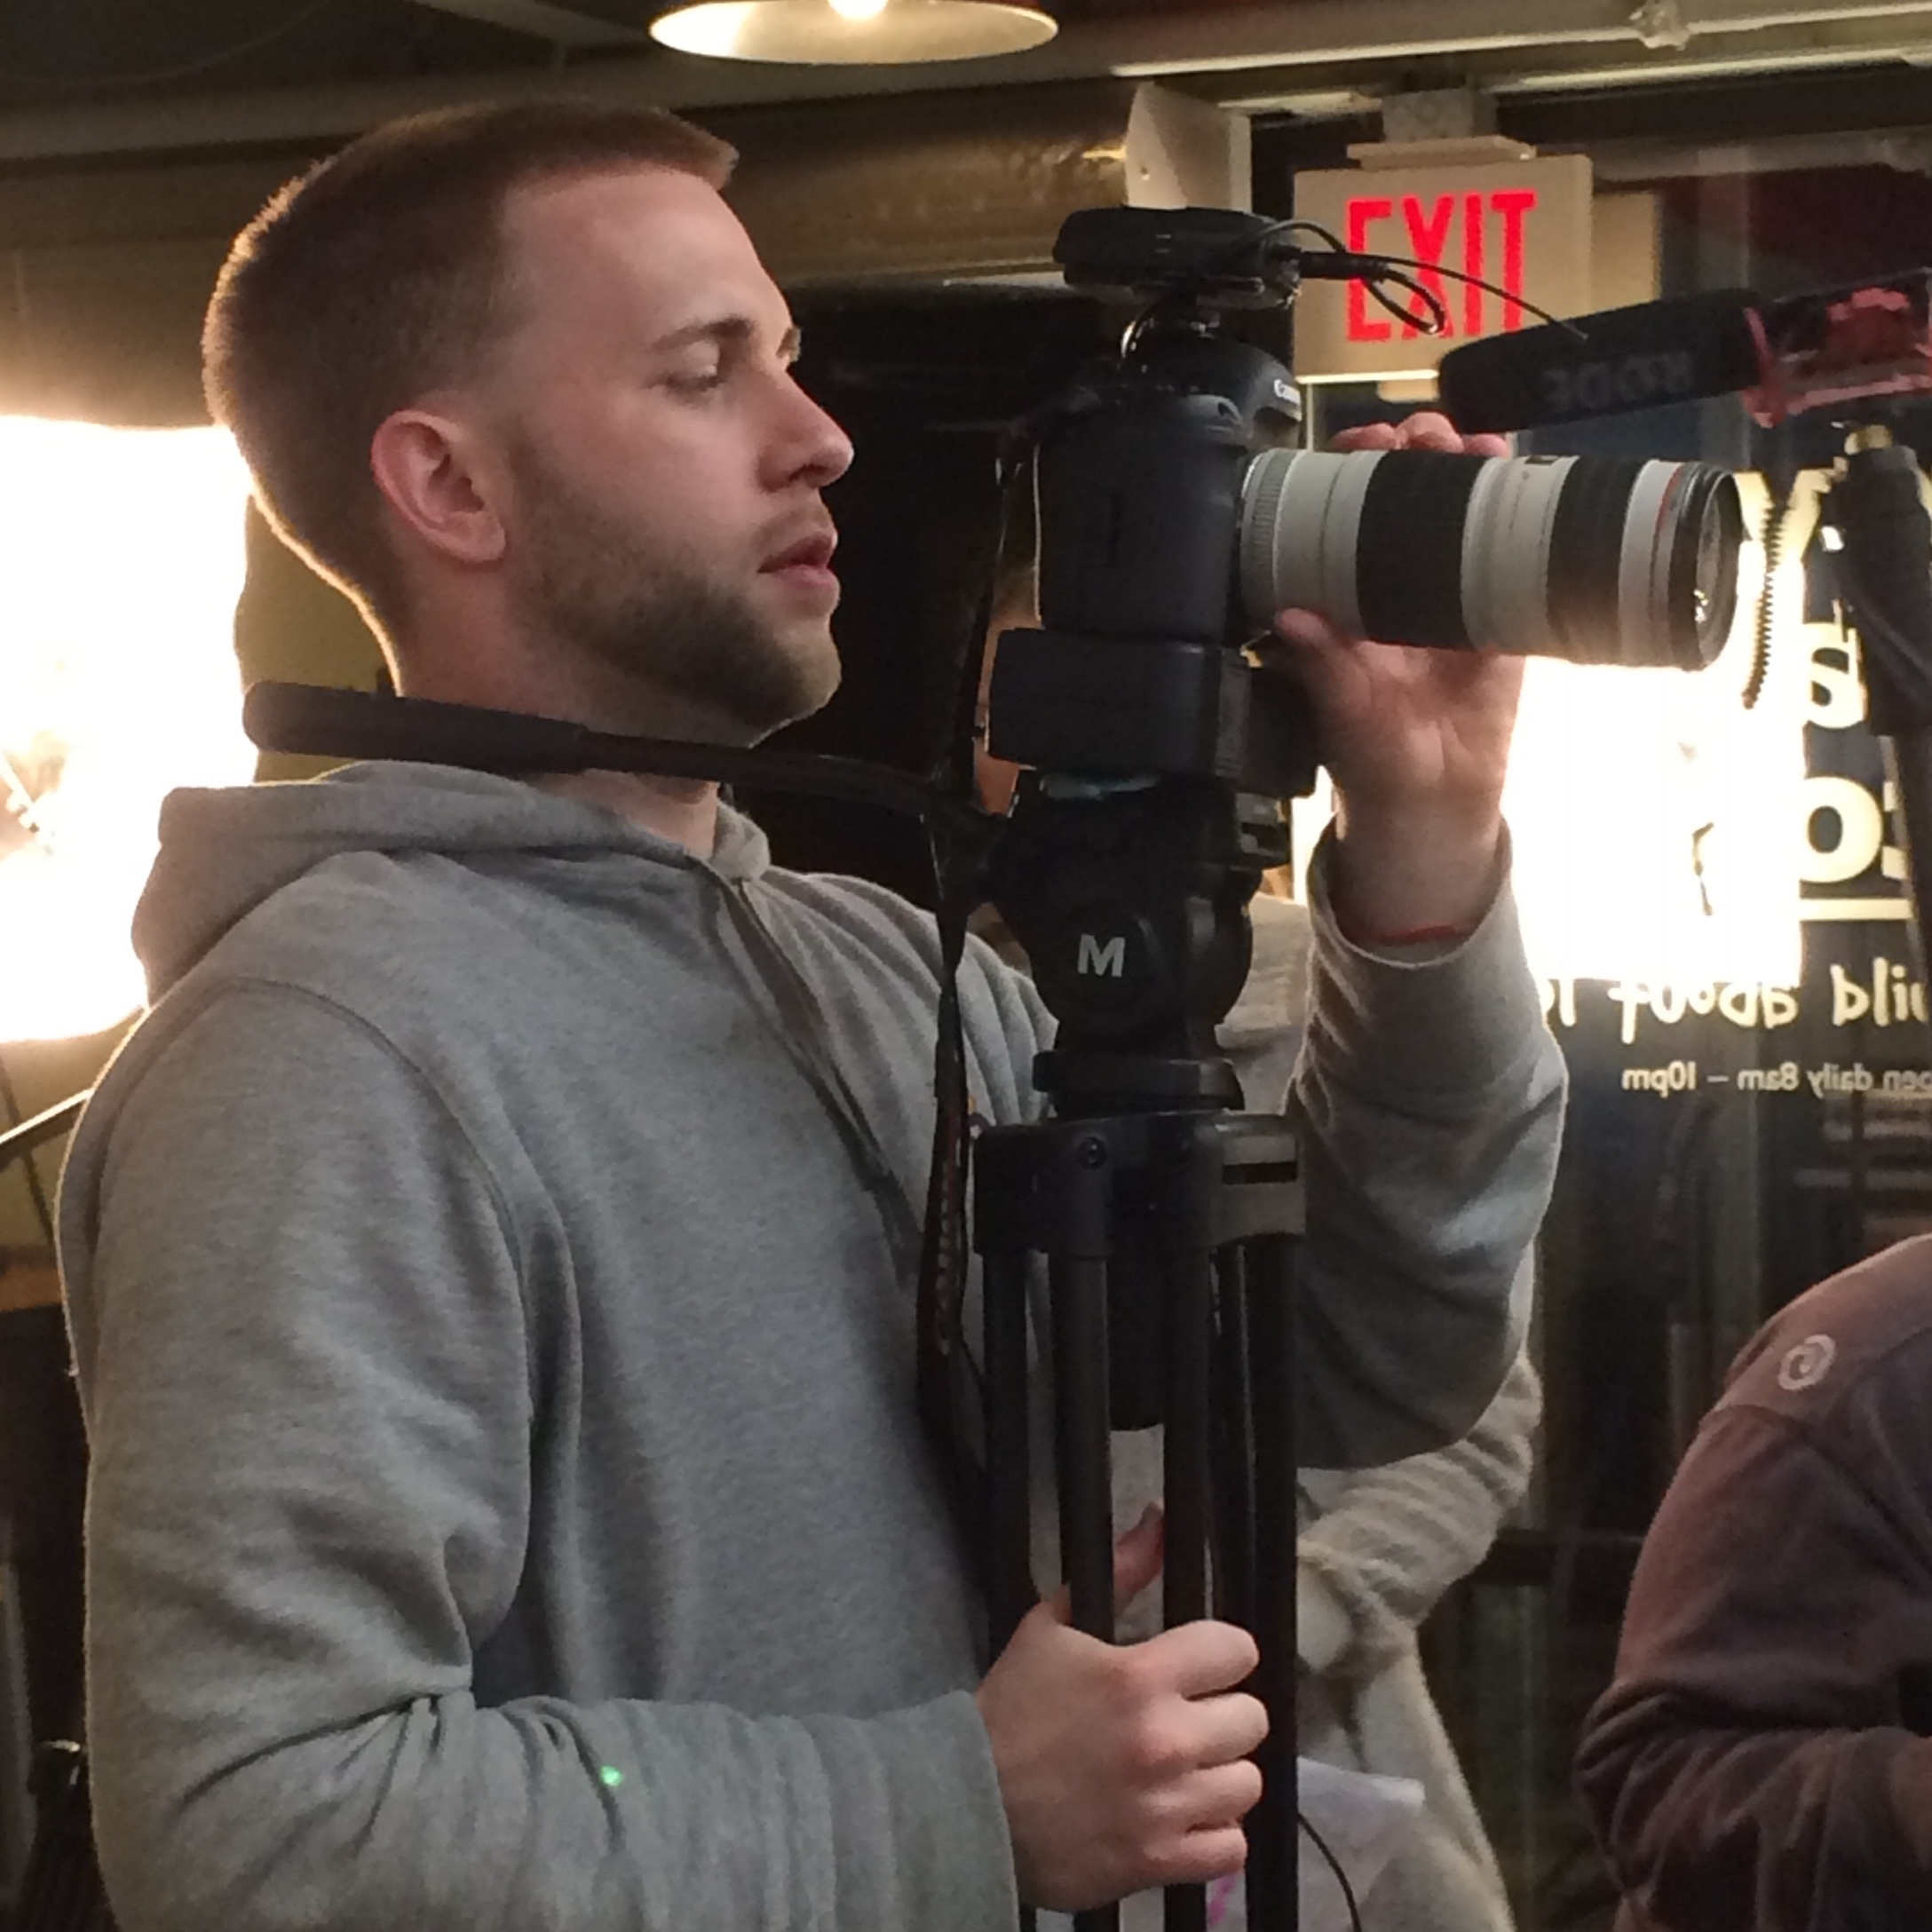 Jon Koehler - Director of Photography; Editor; WriterLiving to learn and loving to teach, he's the guy holding the camera -(aka the guy yelling at all the noisy people!)